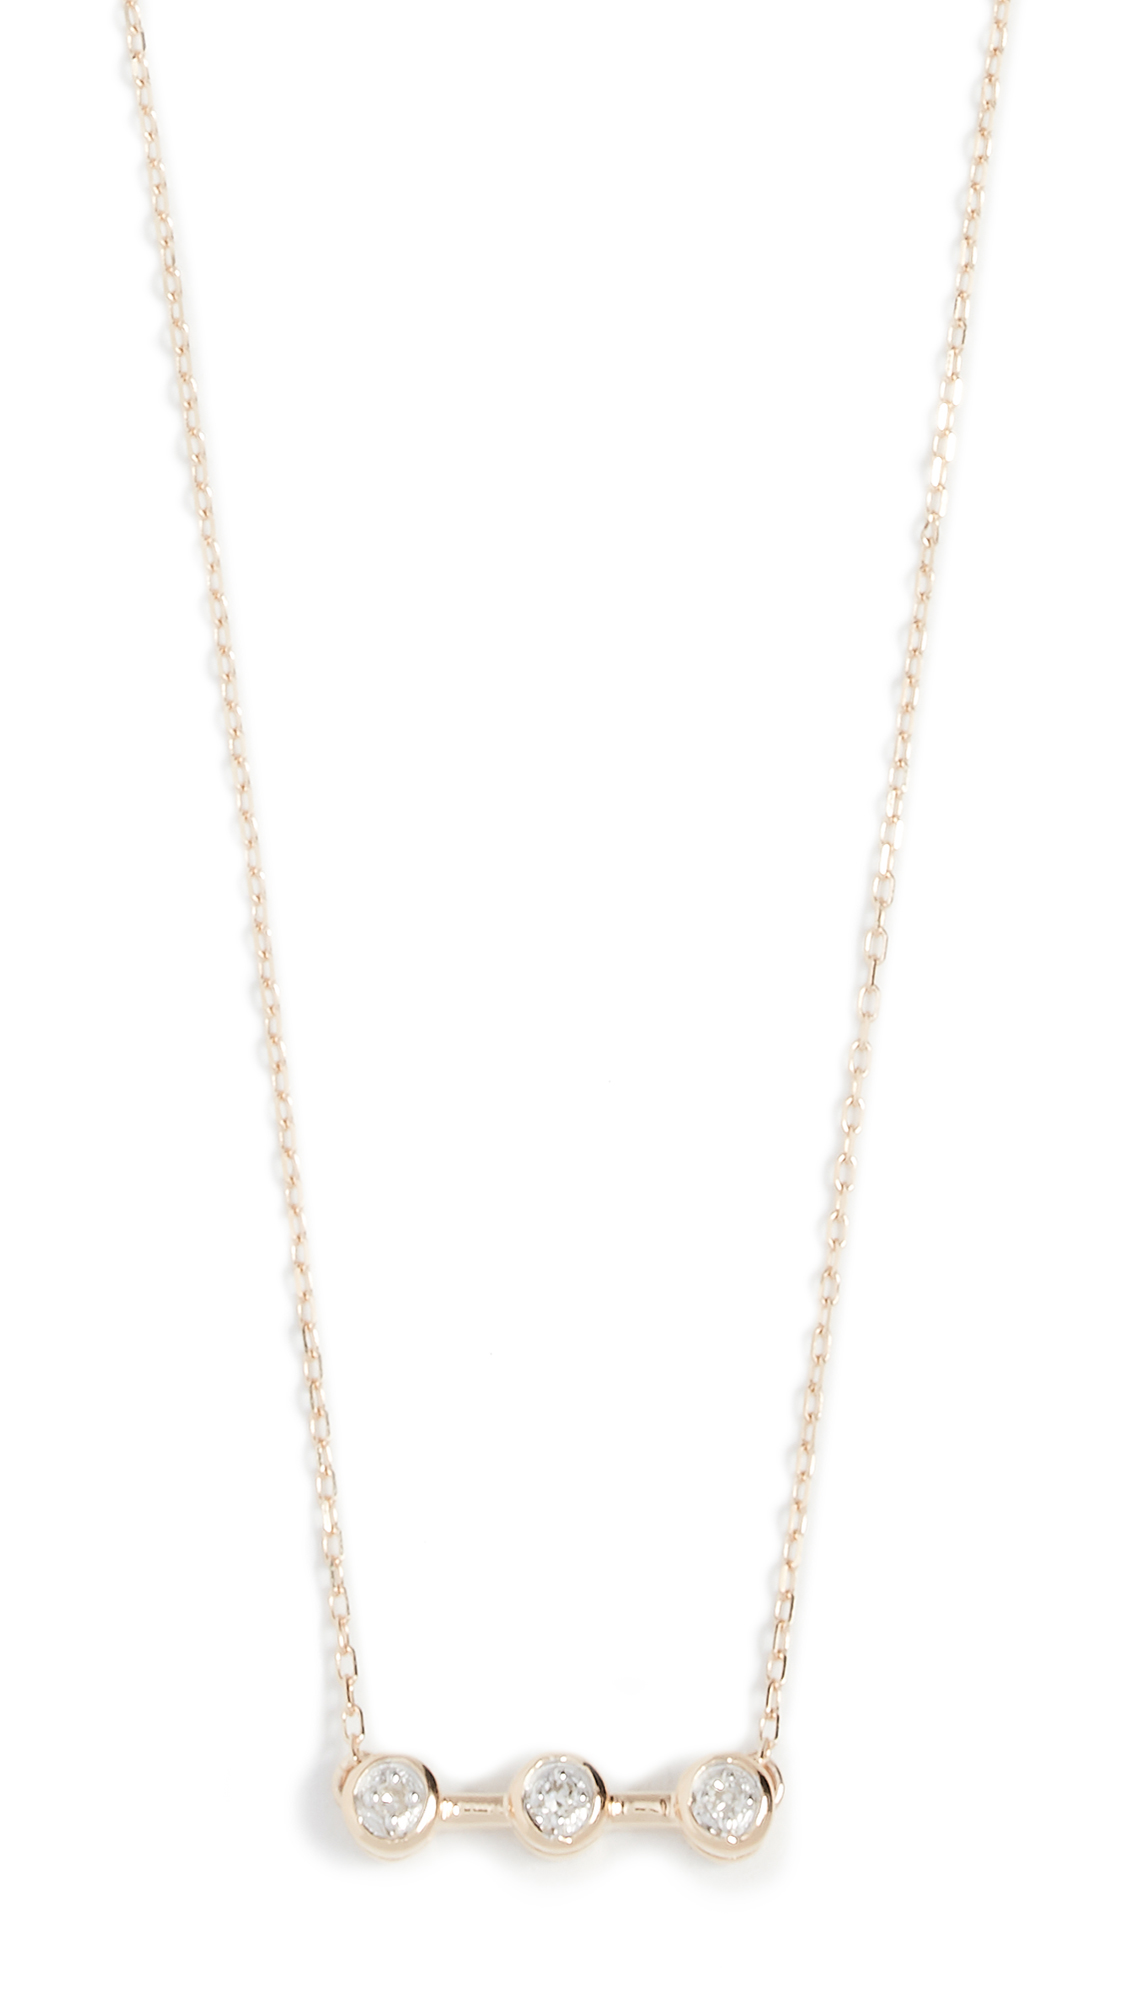 ADINA REYTER 14K GOLD THREE DIAMOND NECKLACE